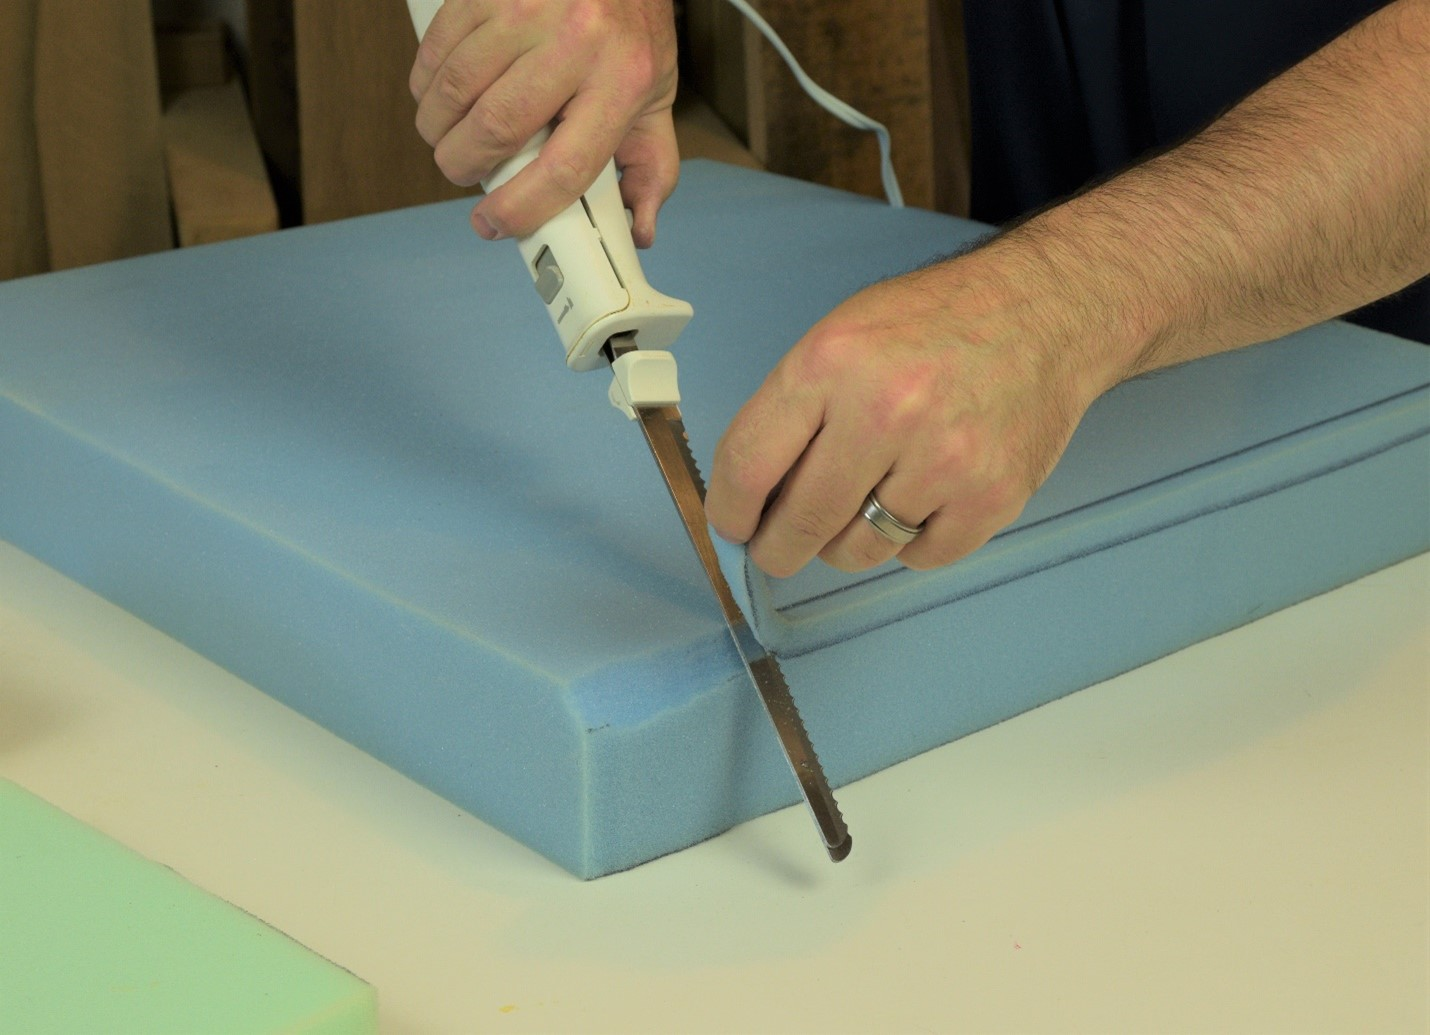 slicing medium to firm foam with a knife